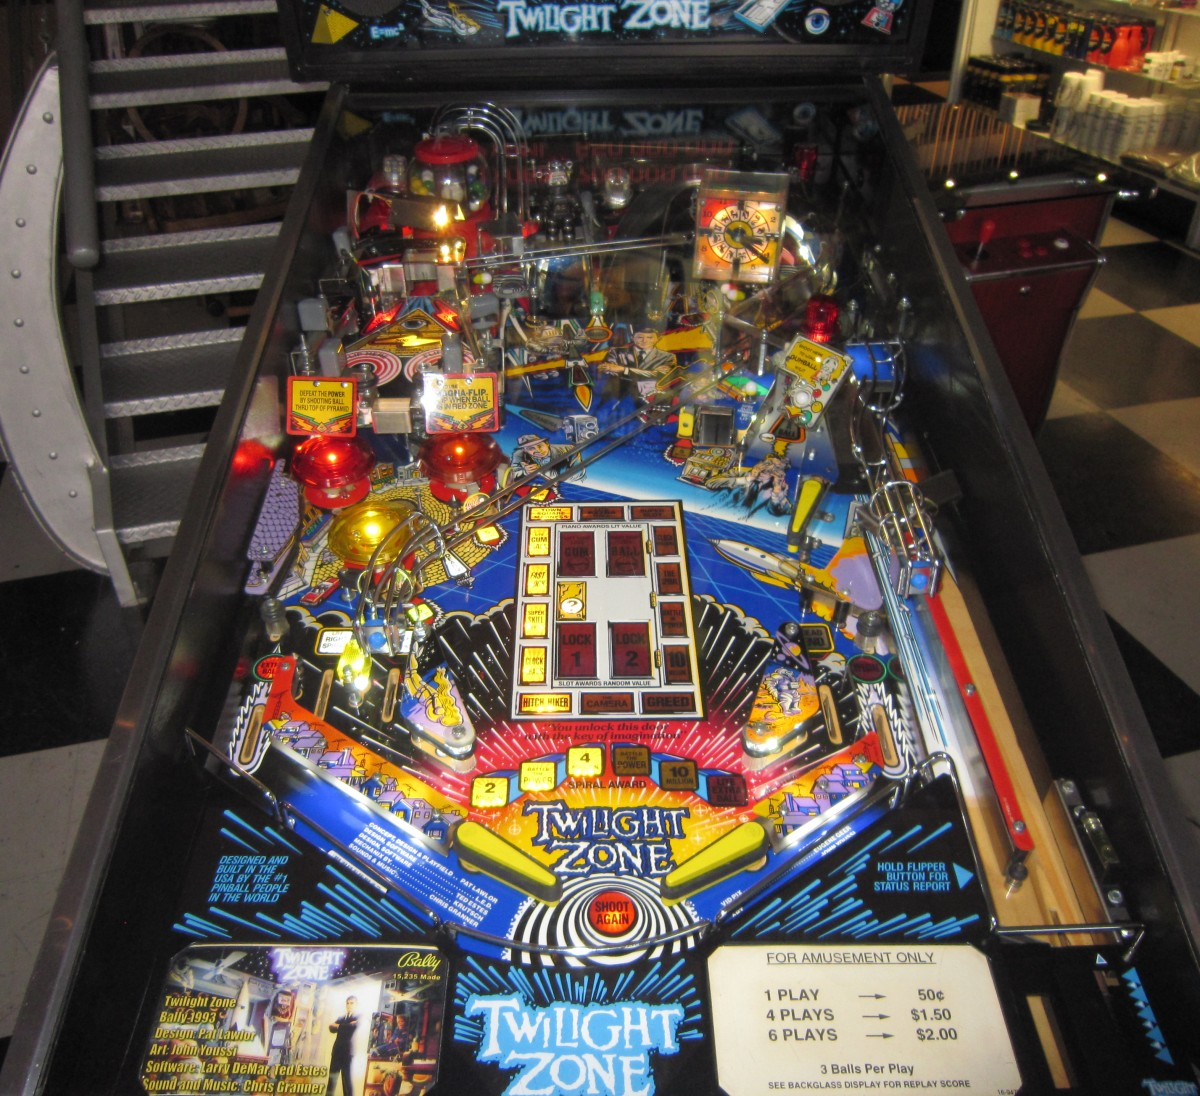 The Twilight Zone Pinball Machine Fun